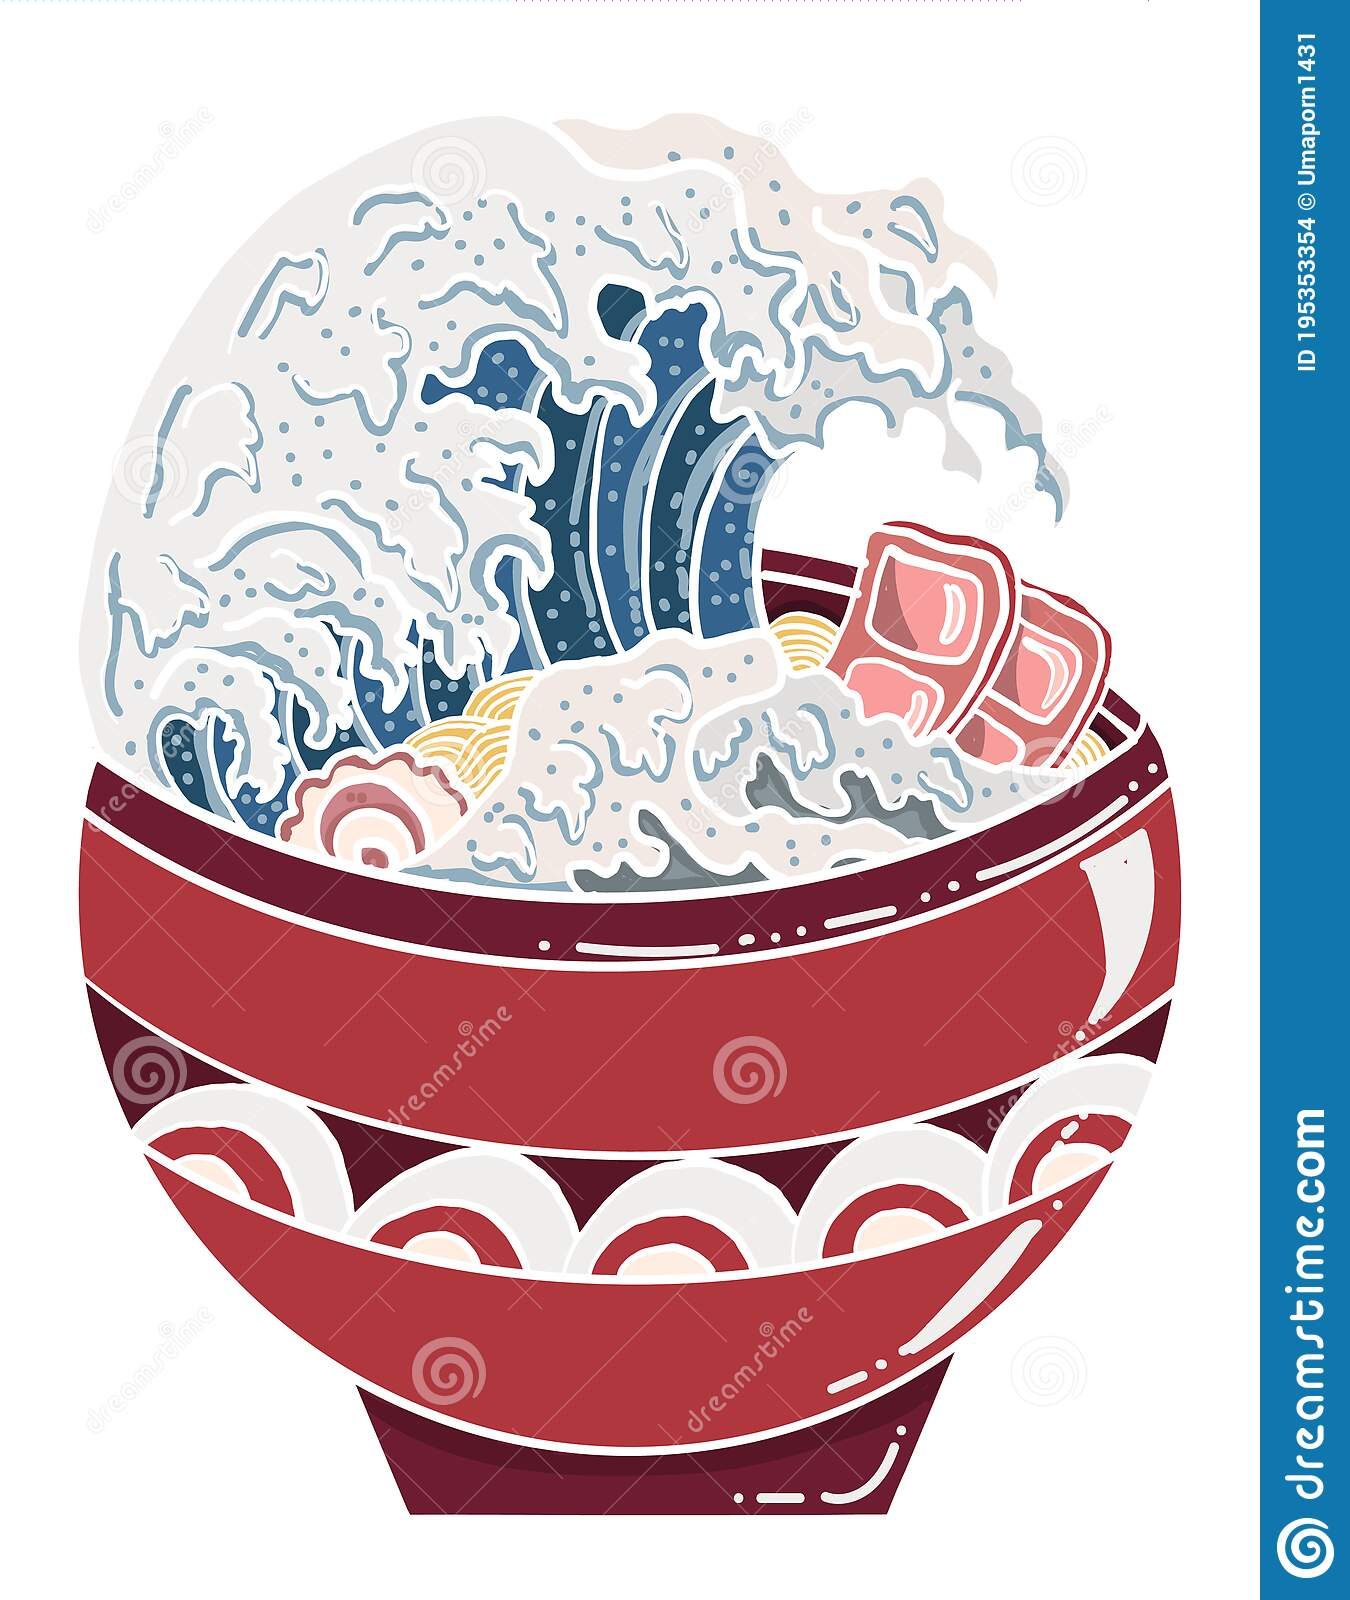 Ramen Vector Illustration For Doodle Art Stock Vector Illustration Of Fashion Chinese 195353354